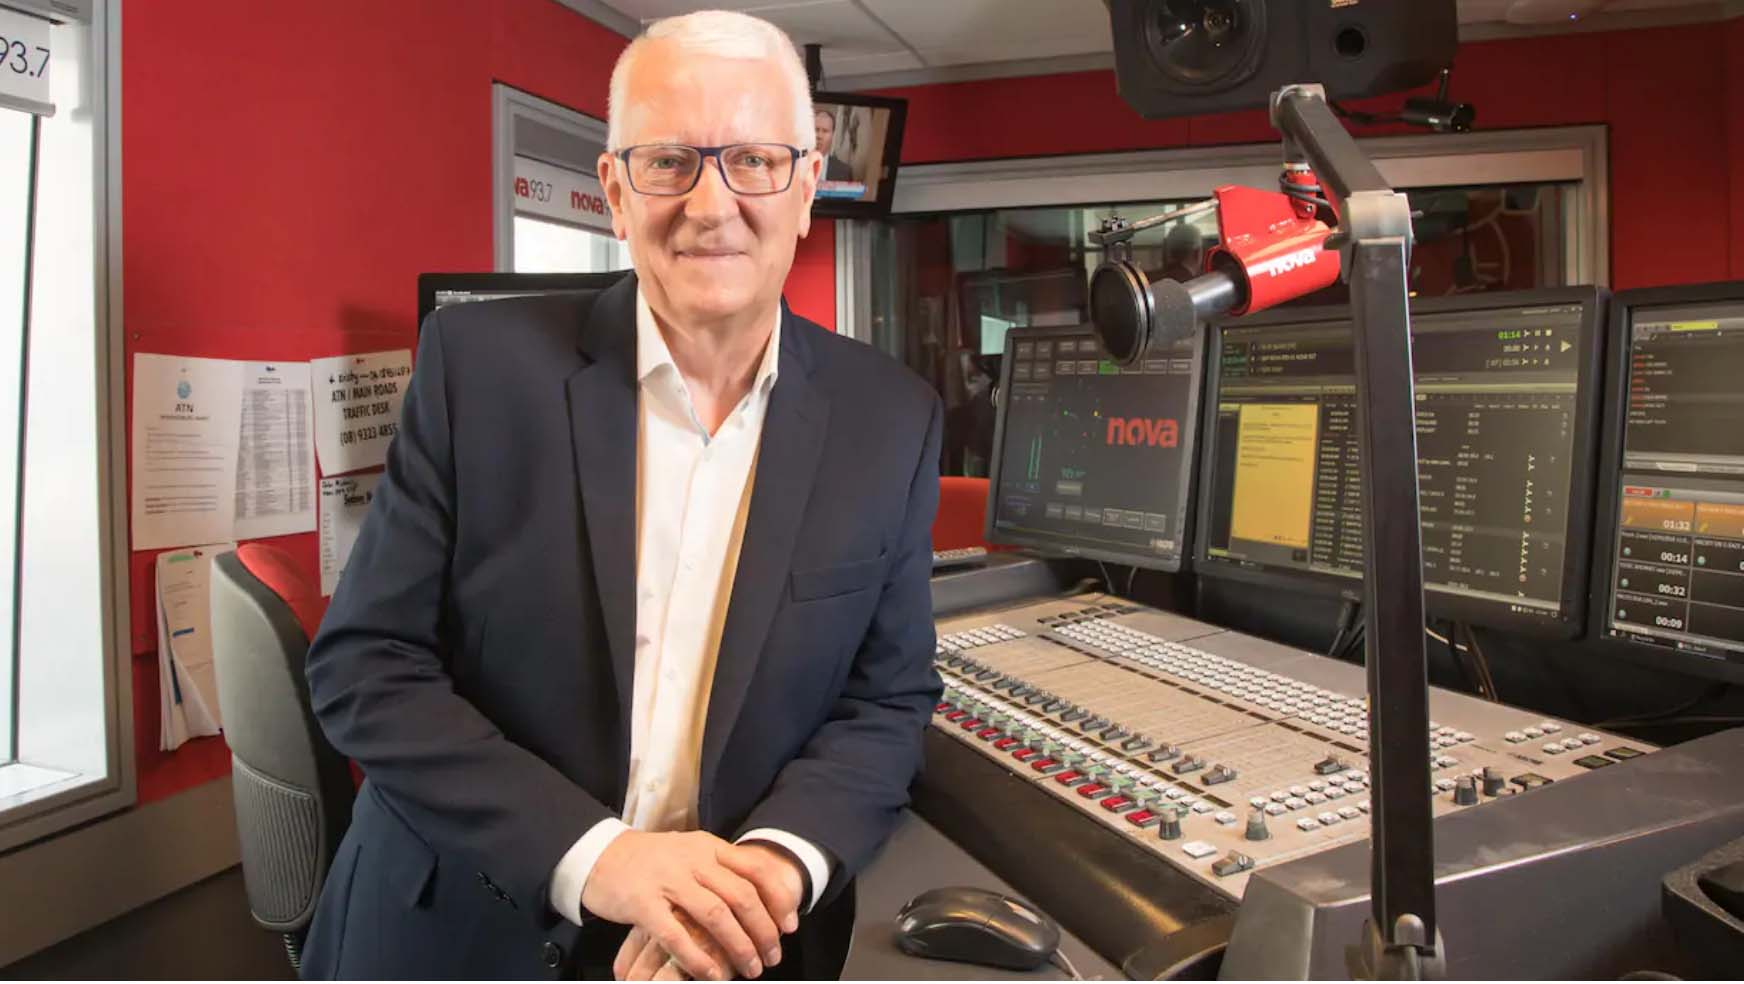 Australia Day Honours 2020: Sydney creative Advertising legend John Bevins and Perth radio chief Gary Roberts awarded AM gongs